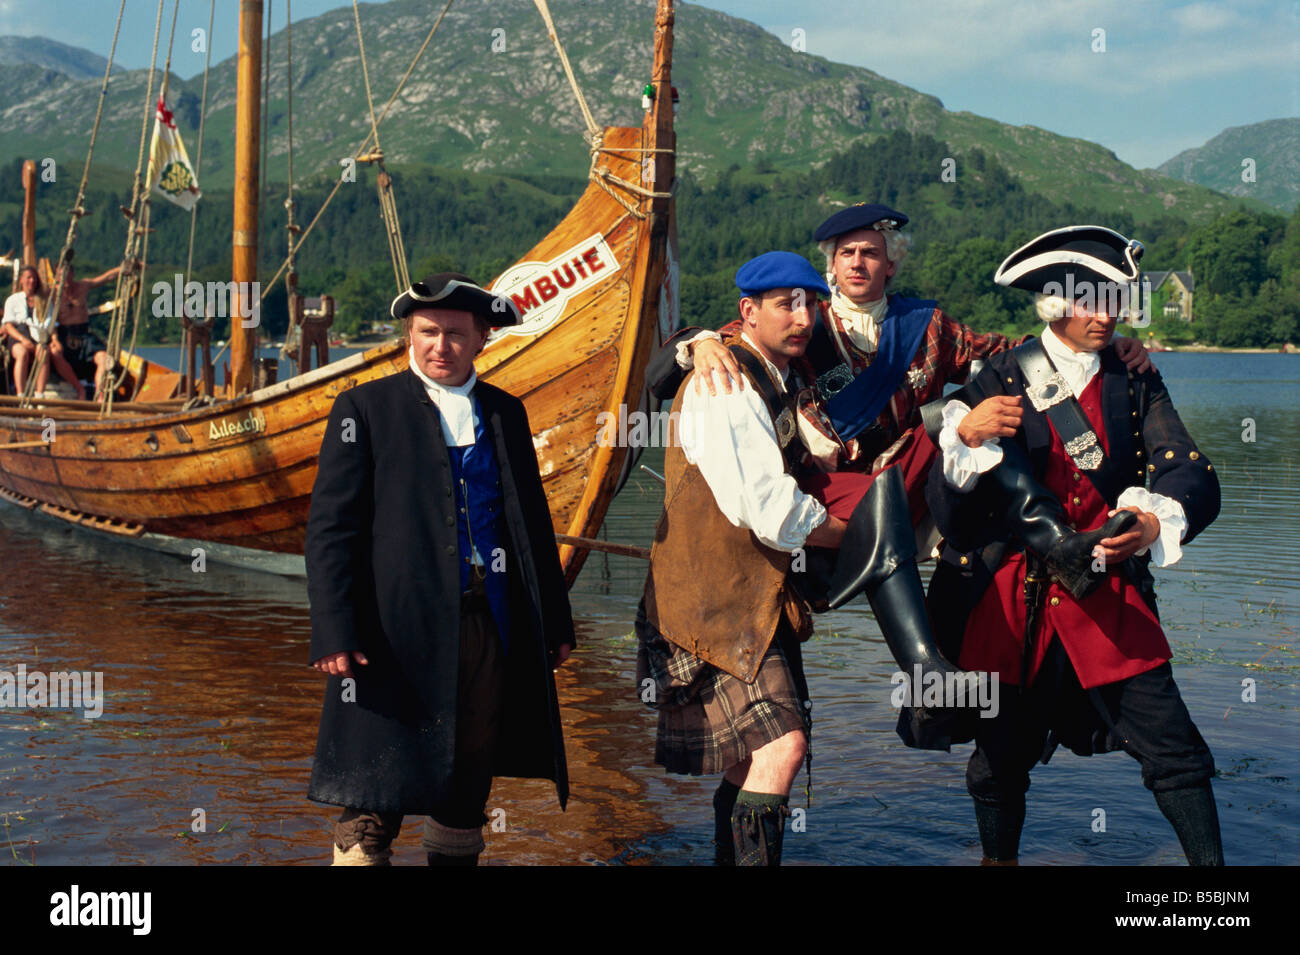 Re-enactment on the 250th aniversary of the return of Prince Charlie in 1745, Glenfinnan, Scotland, Europe - Stock Image